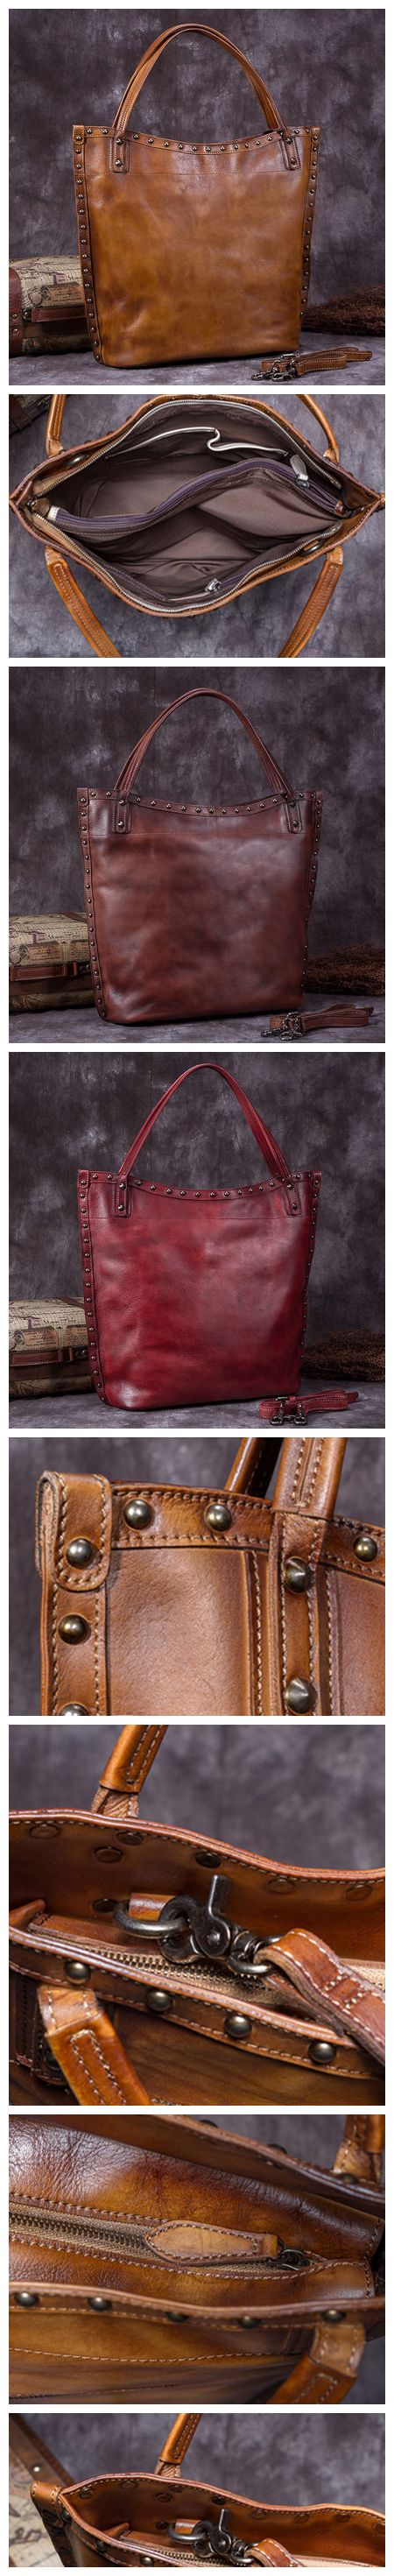 Handmade Full Grain Leather Women Tote Bag, Shopper Bag, Handbag A0050